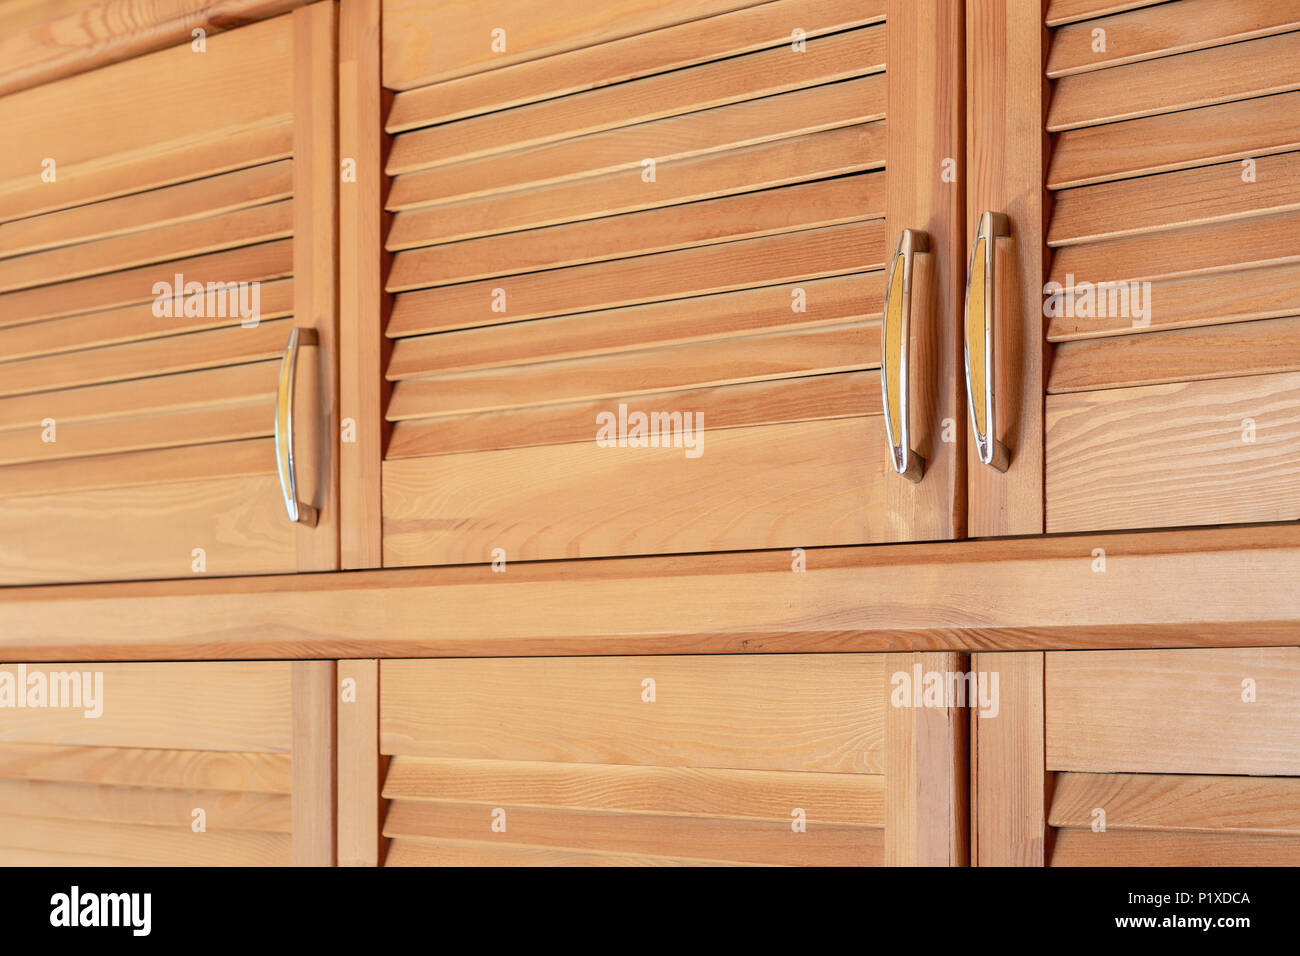 Modern Wooden Cabinet In Classic Rustic Style Details Of Wardrobe